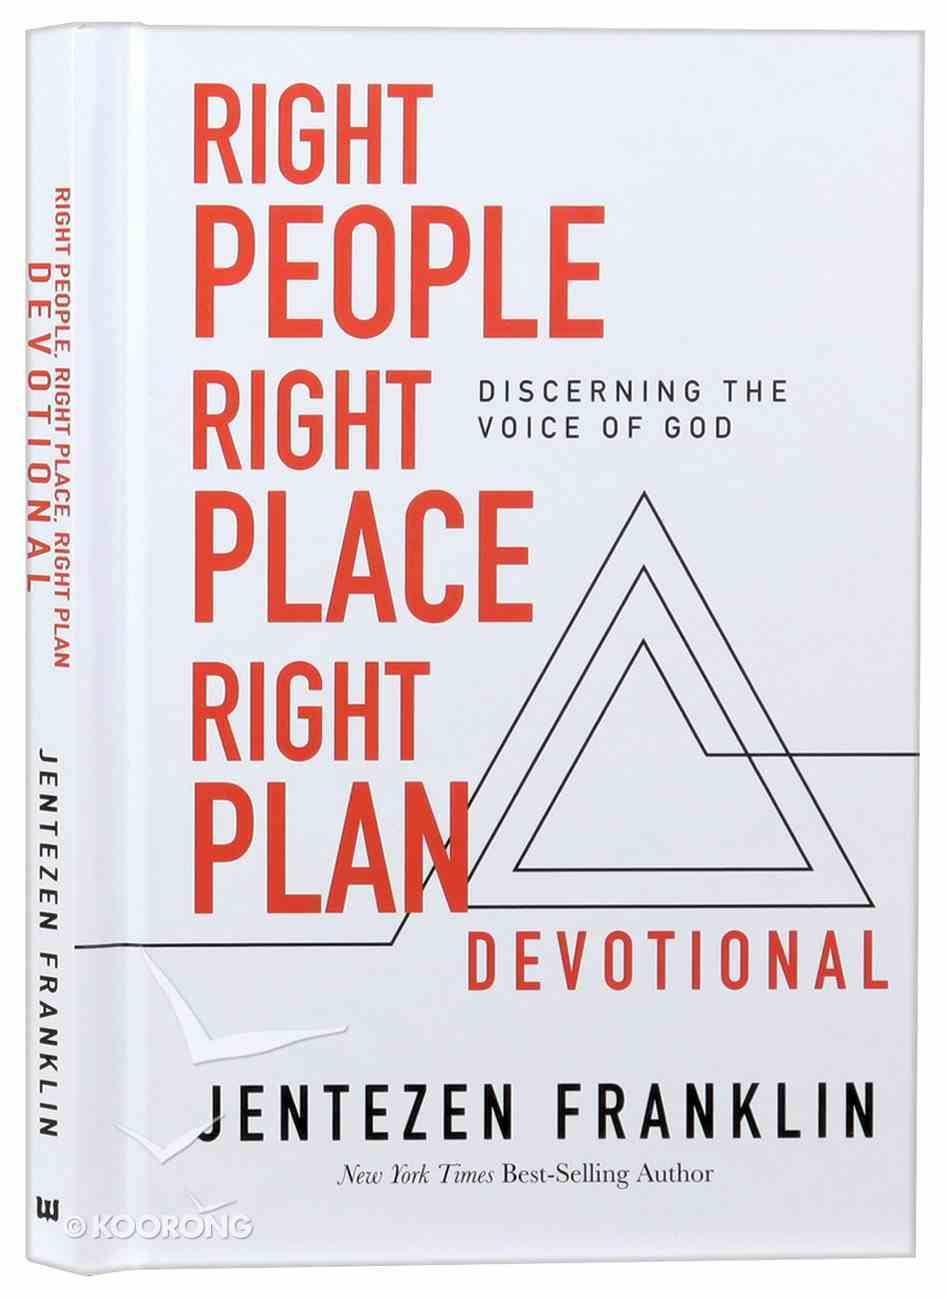 Right People, Right Place, Right Plan Devotional: 30 Days of Discerning the Voice of God Hardback